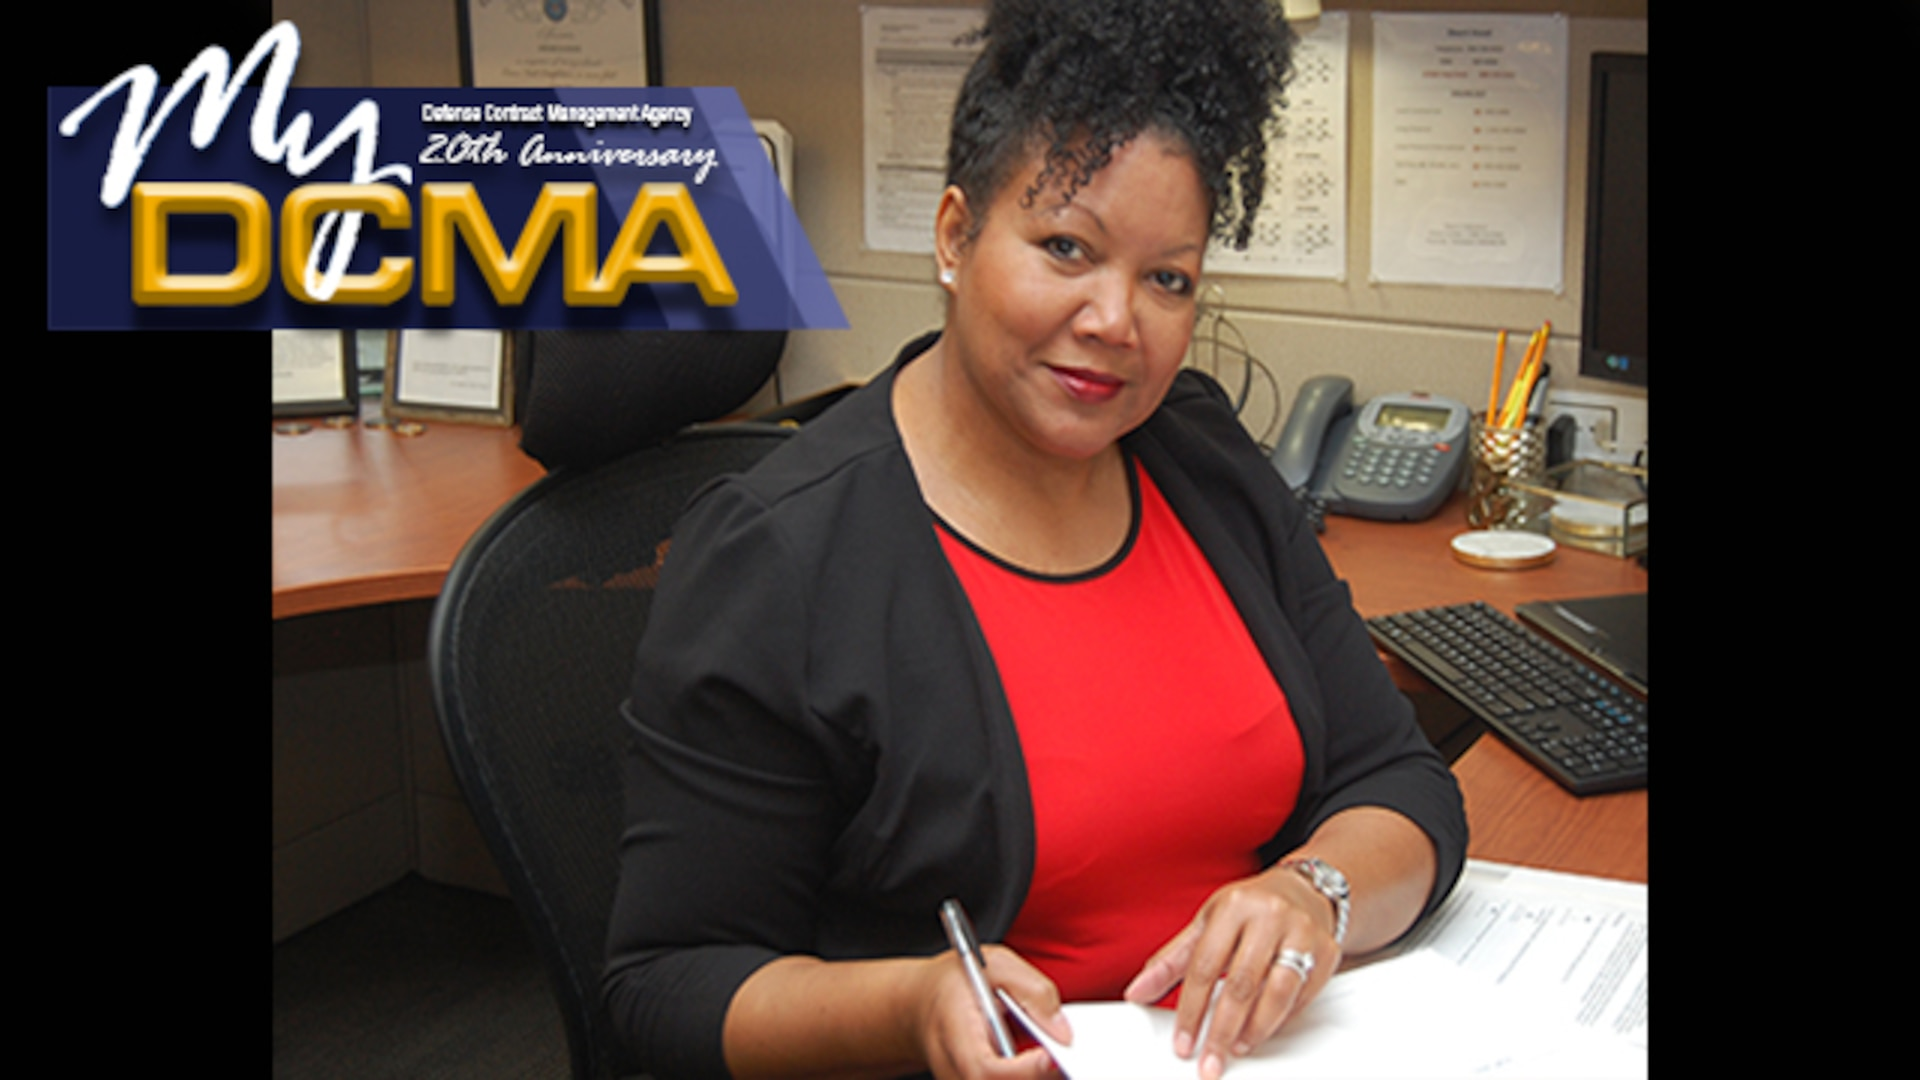 A woman, who is wearing a black blazer, reviews work materials, while sitting at her desk.